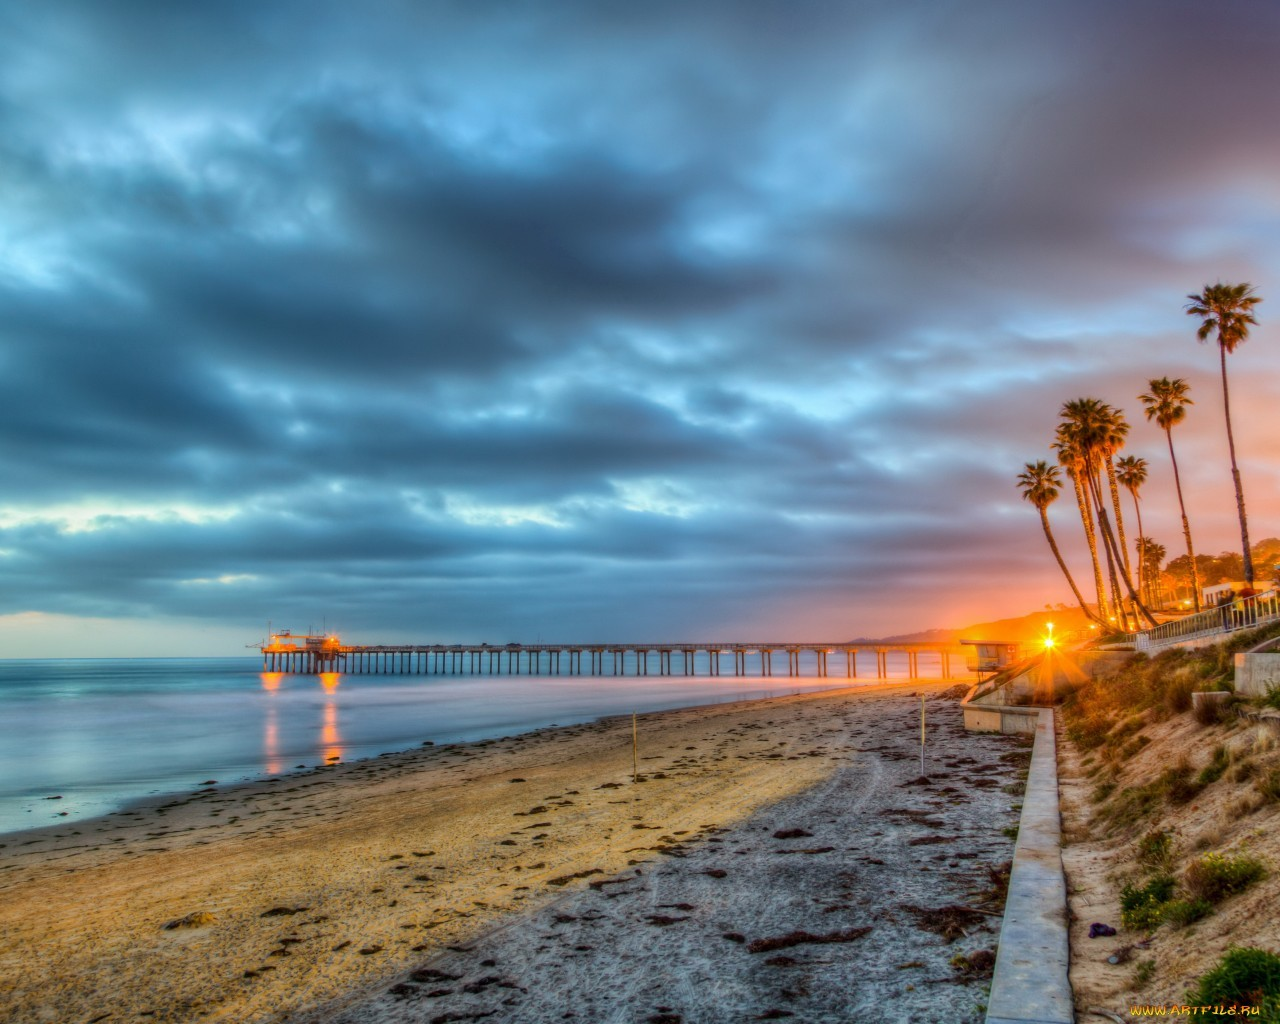 20861 download wallpaper Landscape, Sea, Clouds, Beach, Palms screensavers and pictures for free